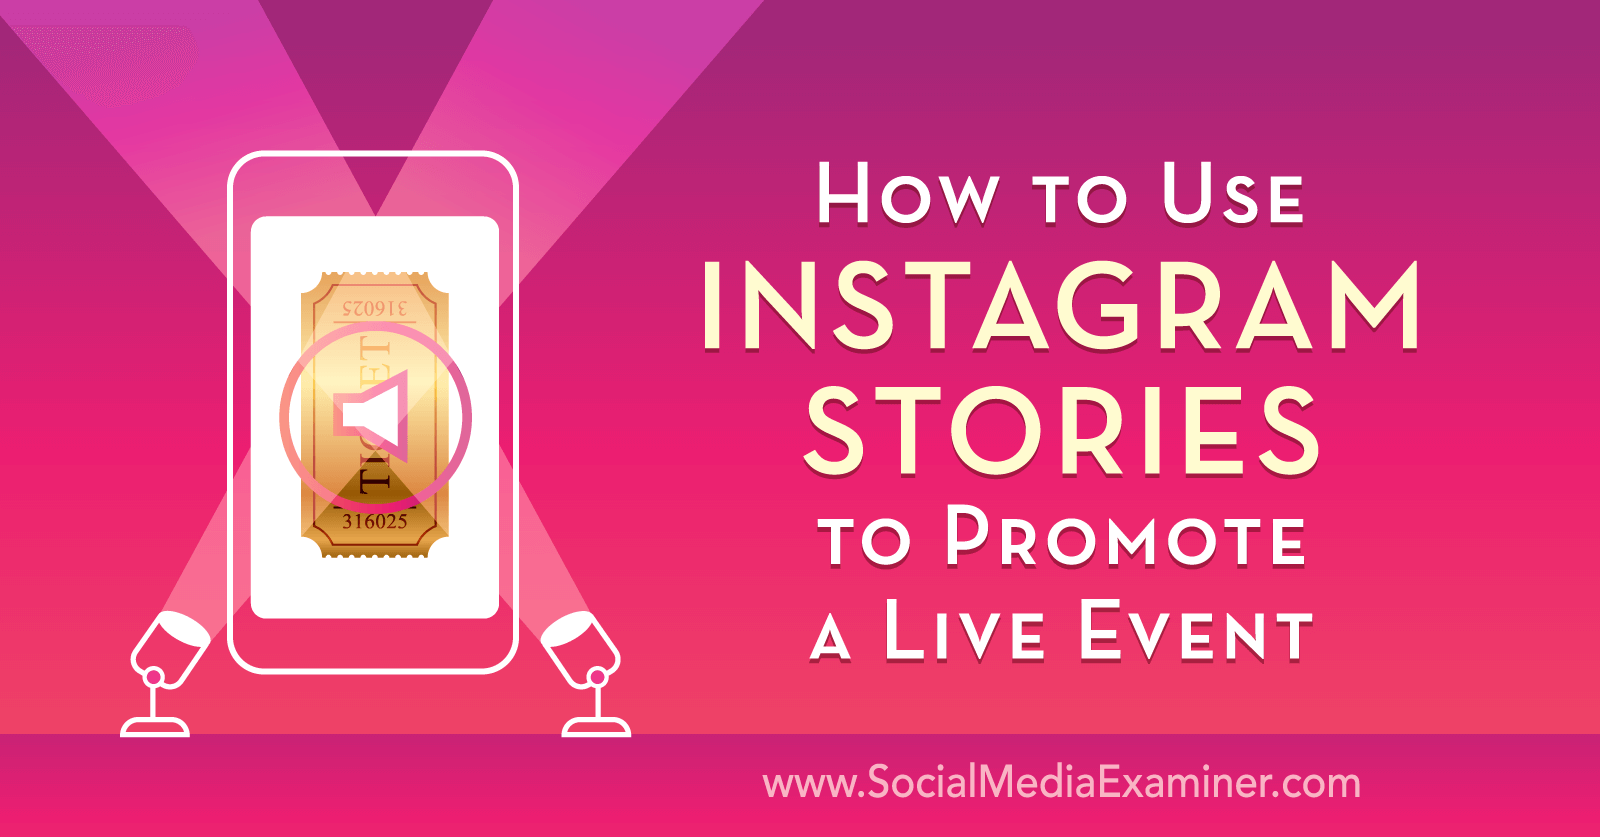 30 days of instagram content for musicians social media marketing quotes social media marketing strategy facebook instagram music How To Use Instagram Stories To Promote A Live Event Social Media Examiner